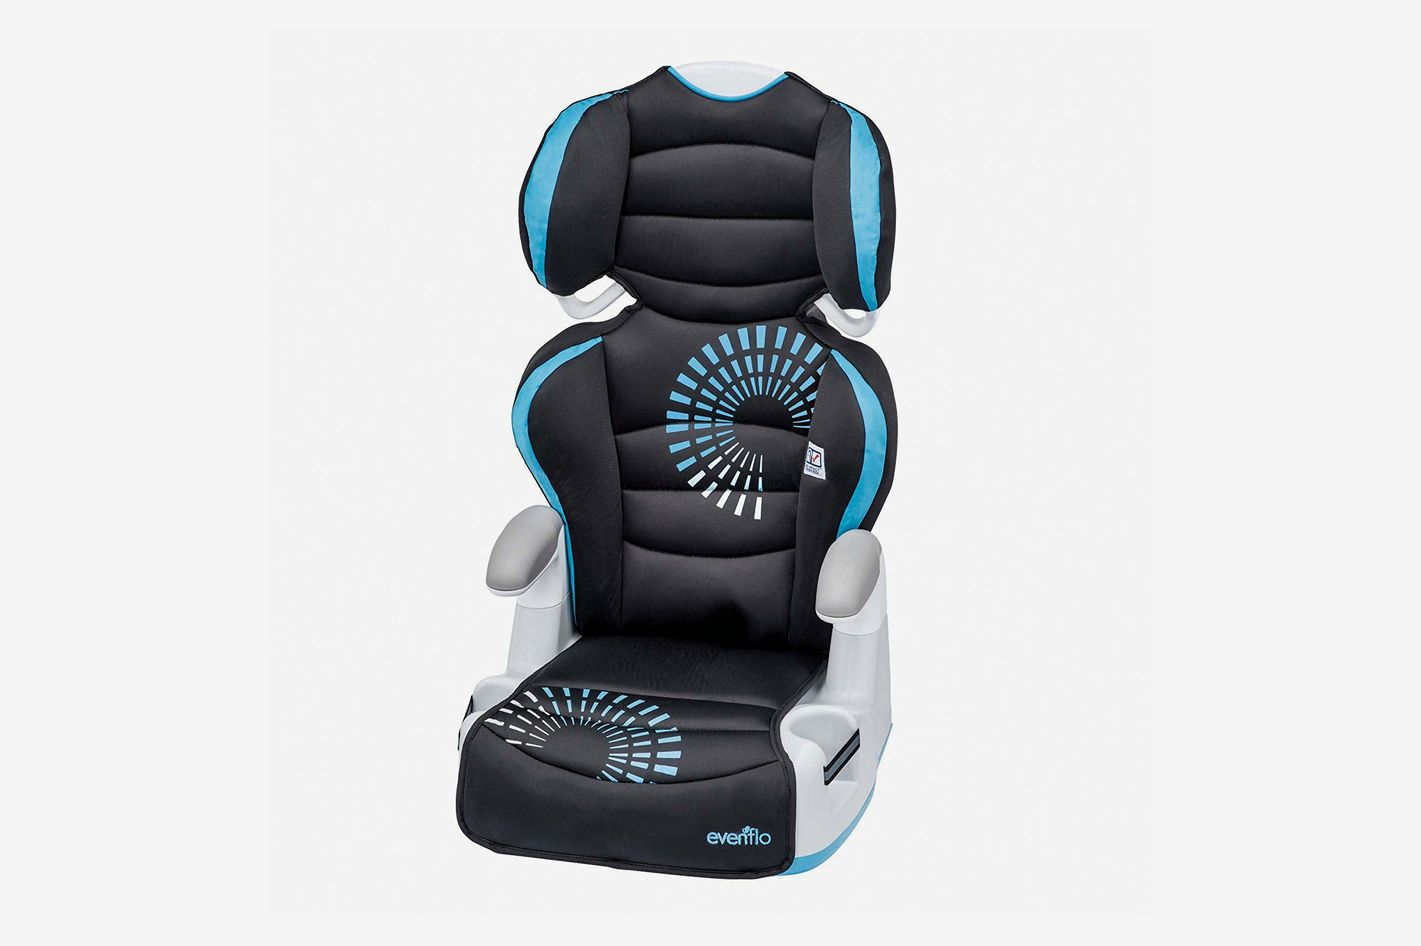 Evenflo Kid Amp Booster Car Seat